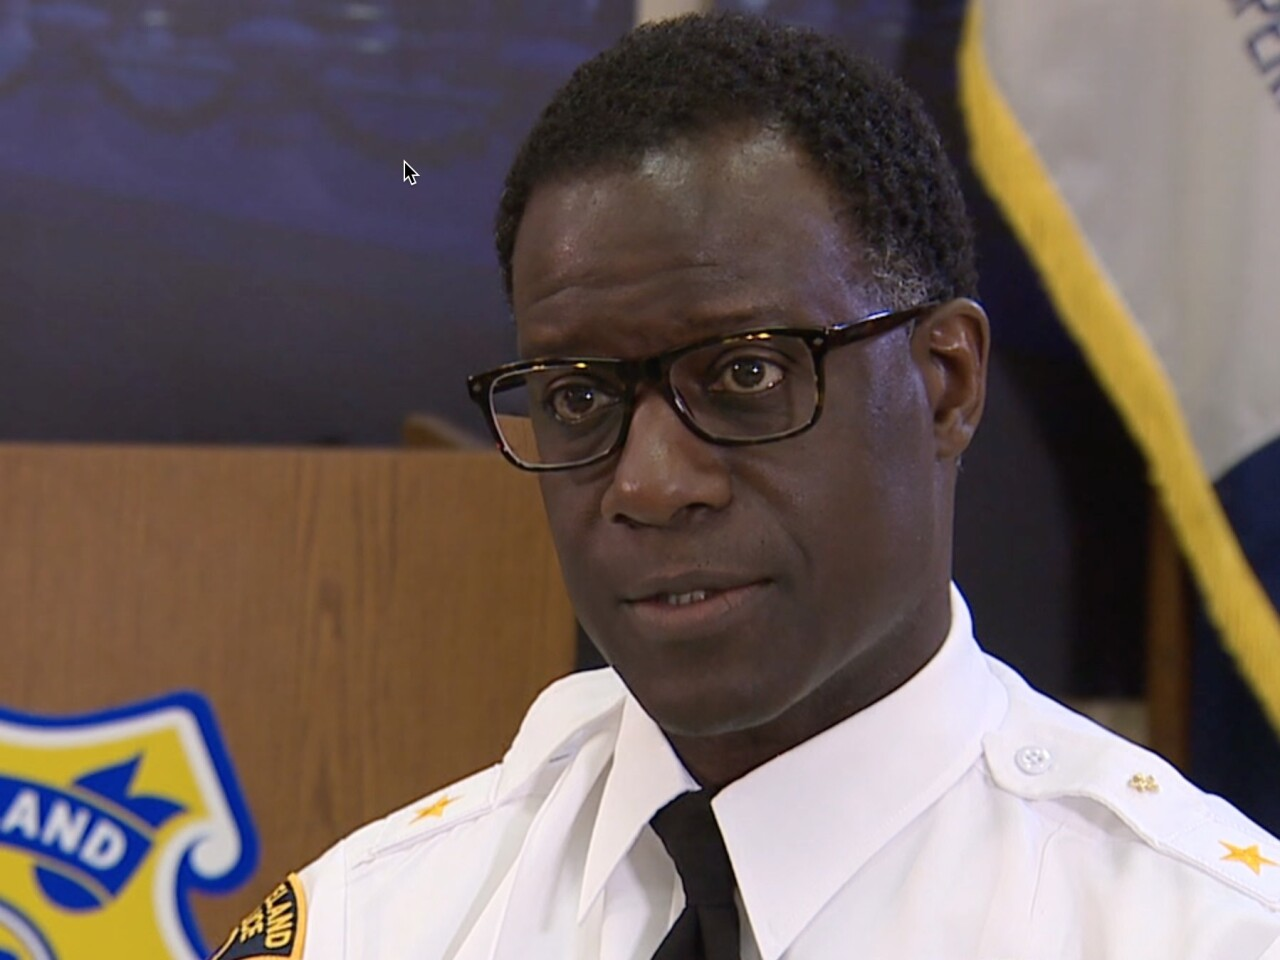 Cleveland Police Chief Calvin Williams changes police policy after News 5 documentary